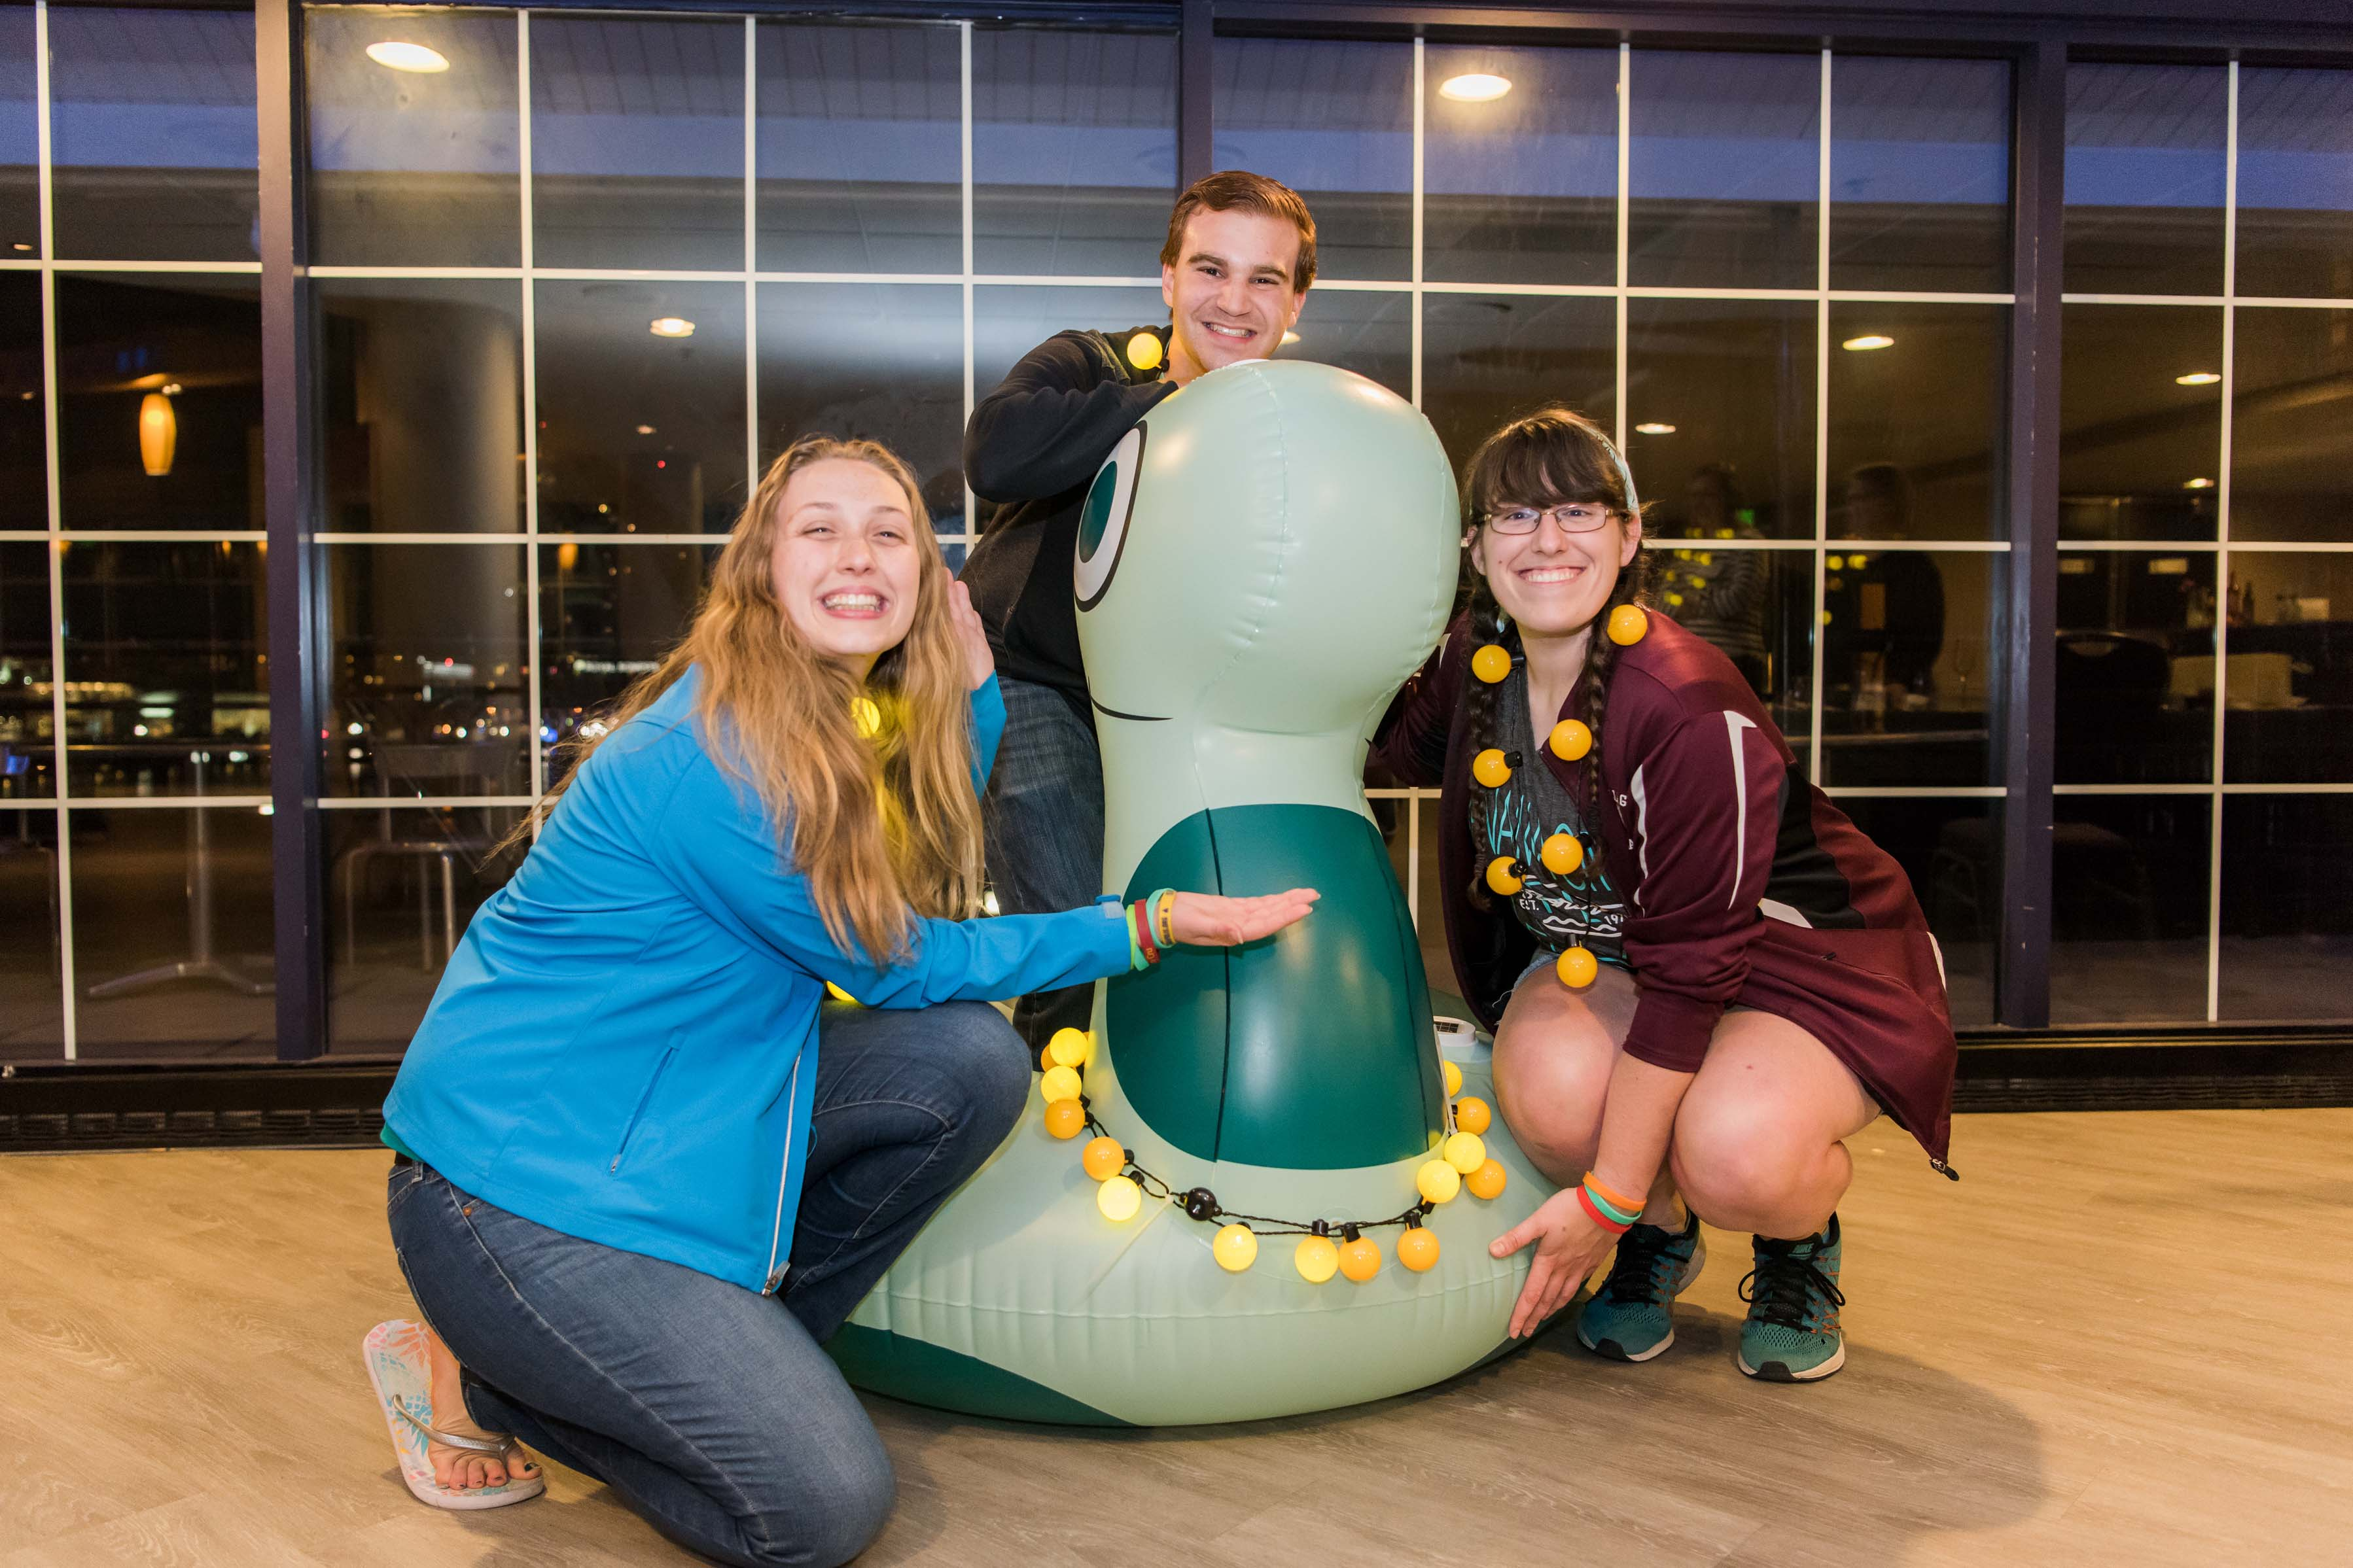 Katelyn, Ally, and other student pose with blow up animal